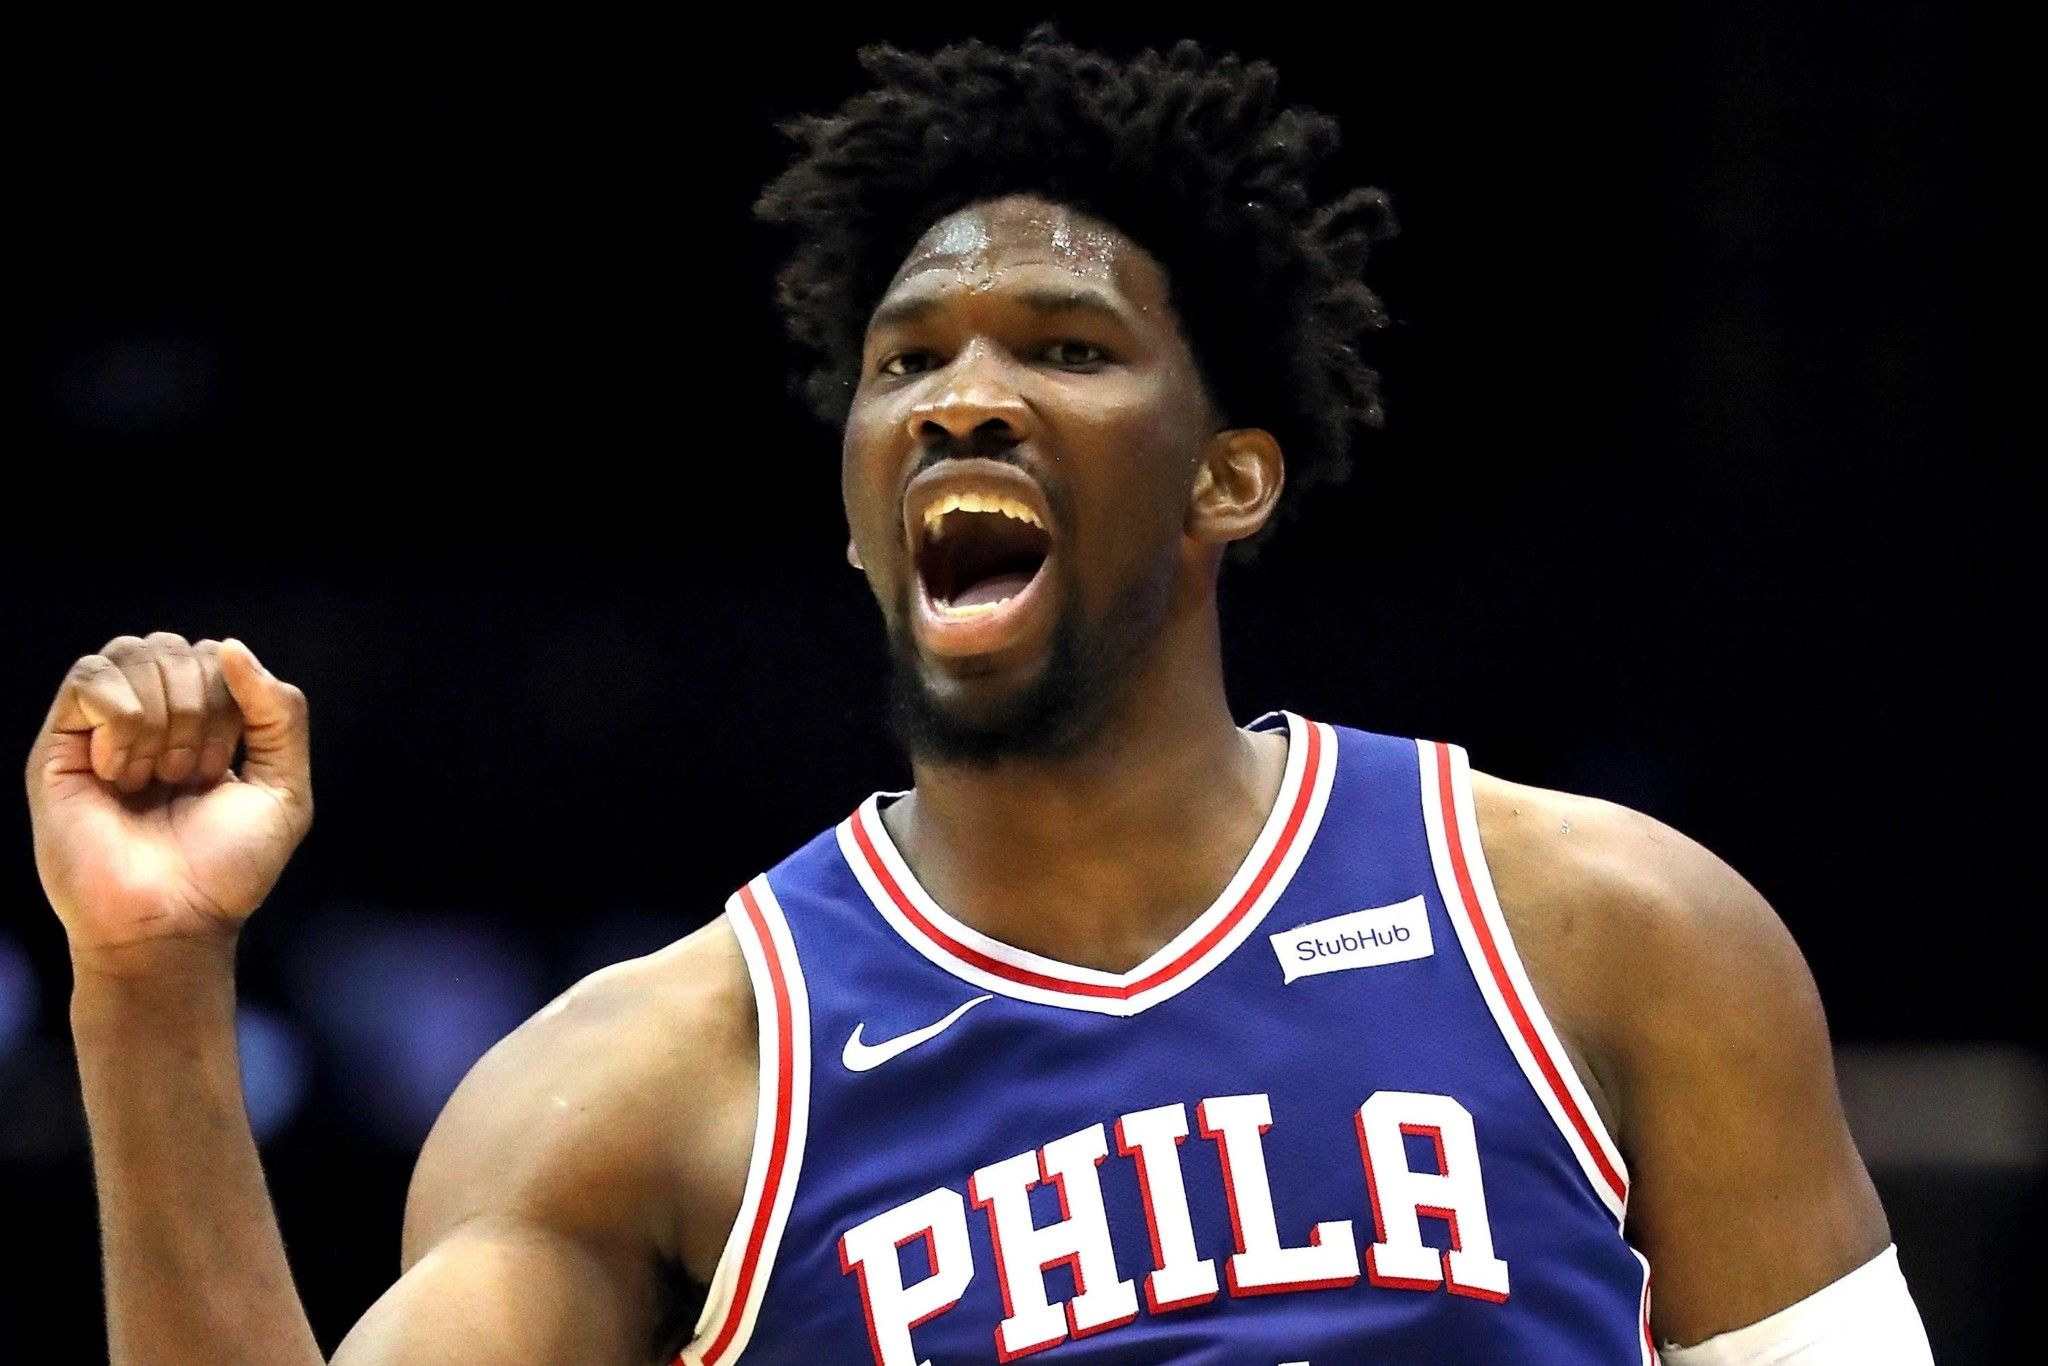 The Philadelphia 76ers clinch a playoff spot after 6 years